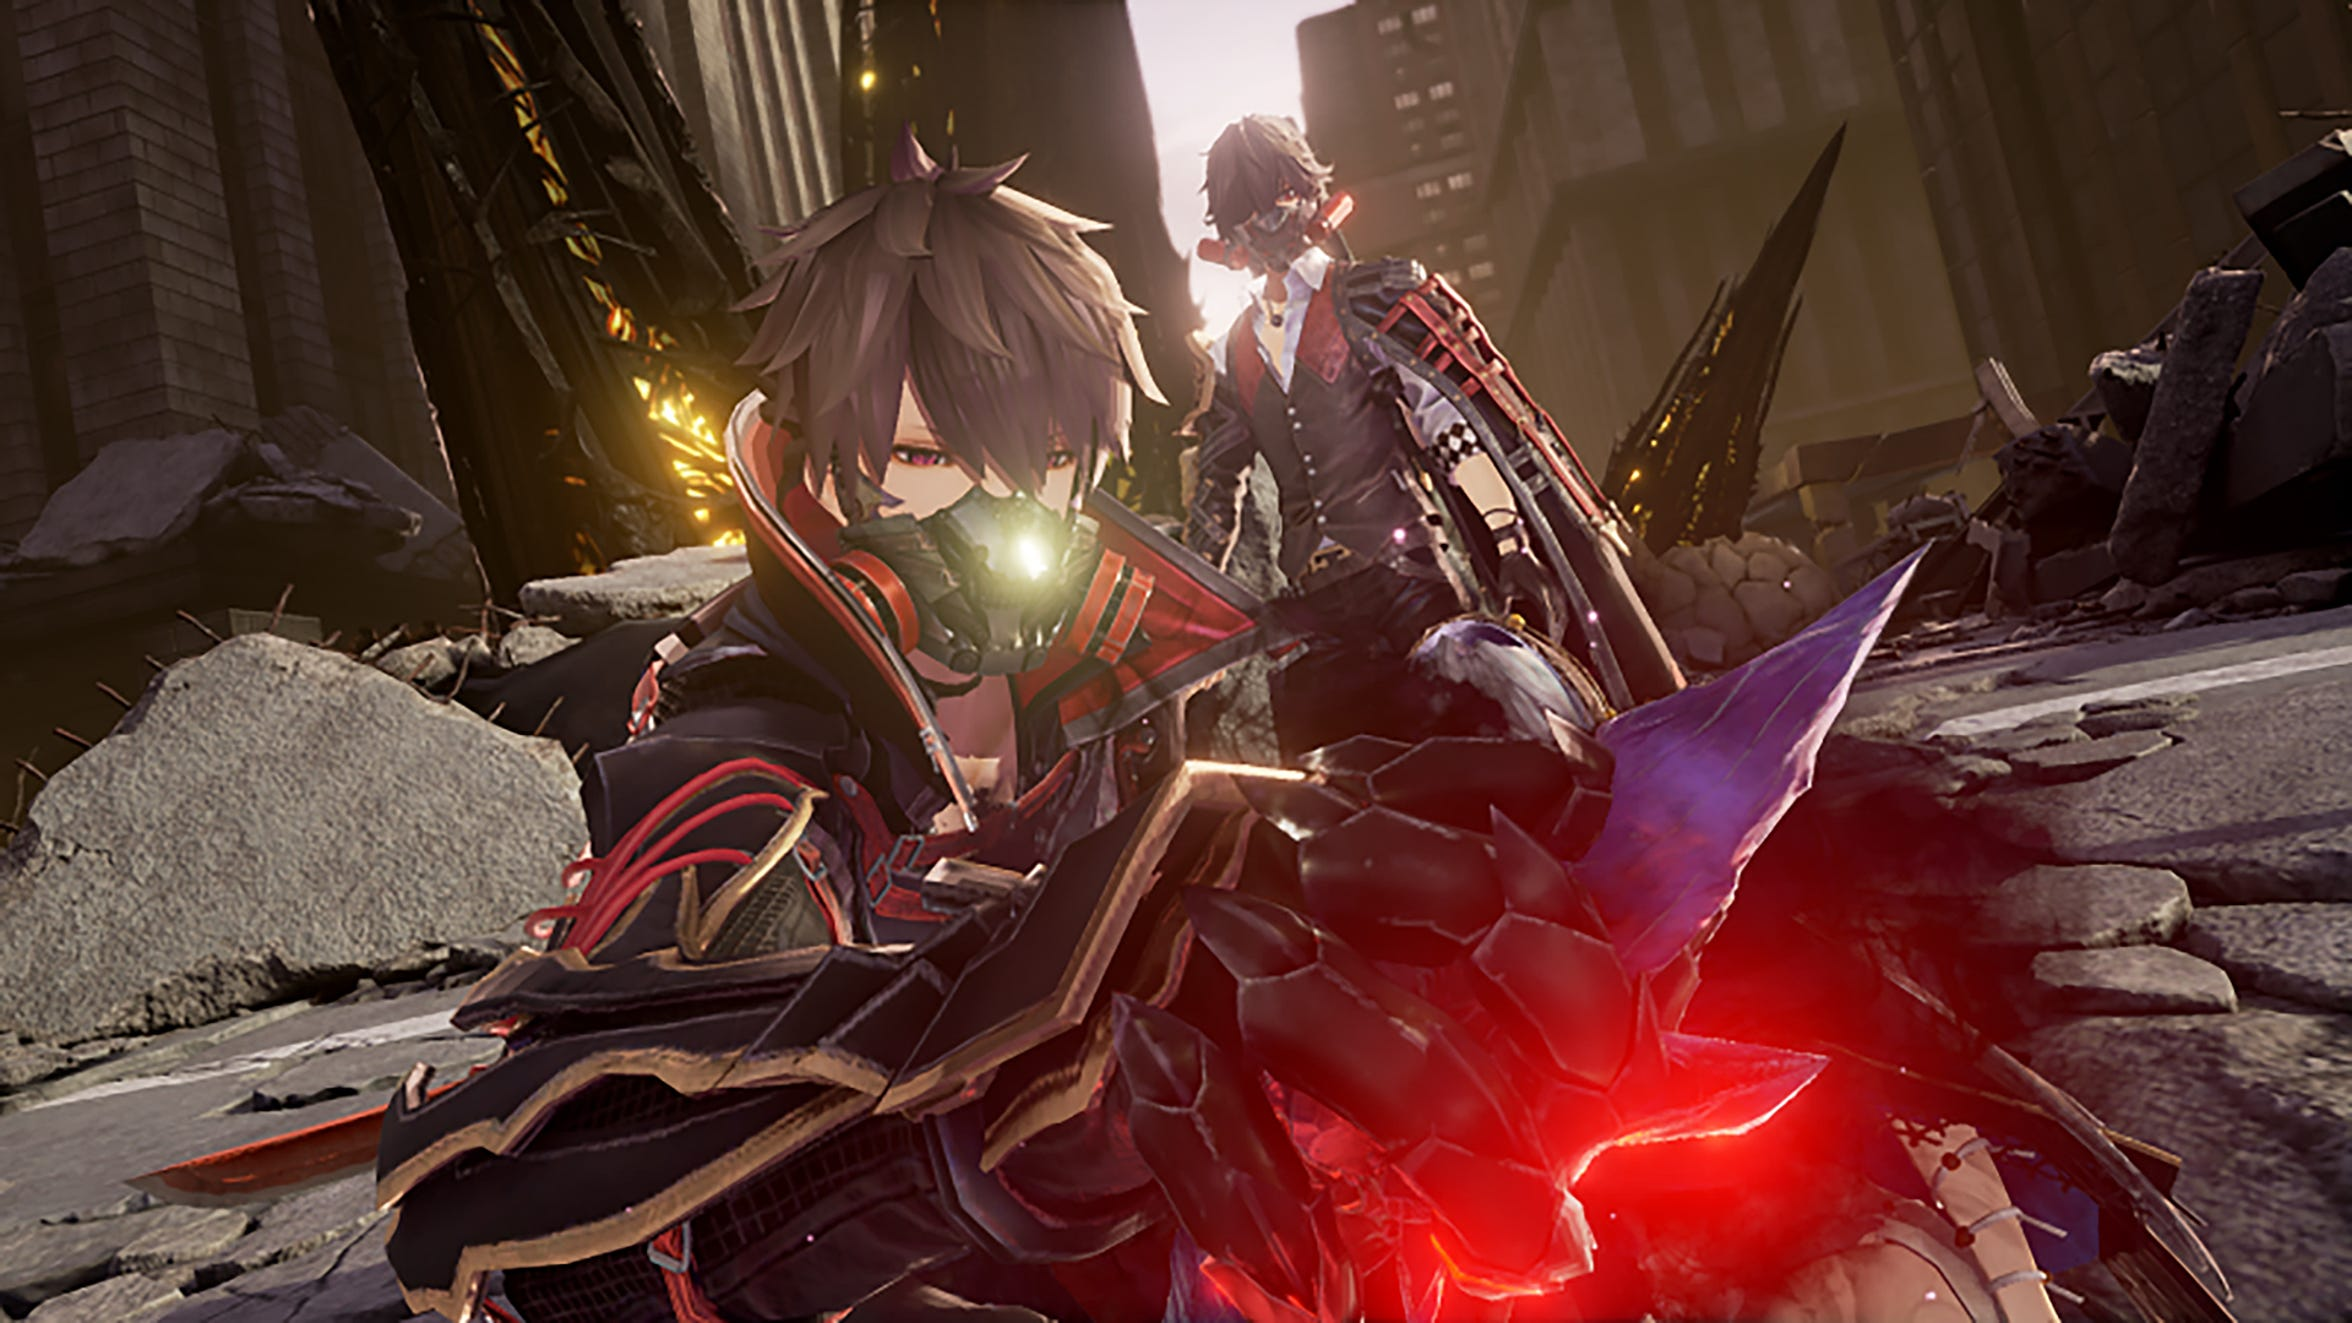 Code Vein for PC, PS4 and Xbox One.